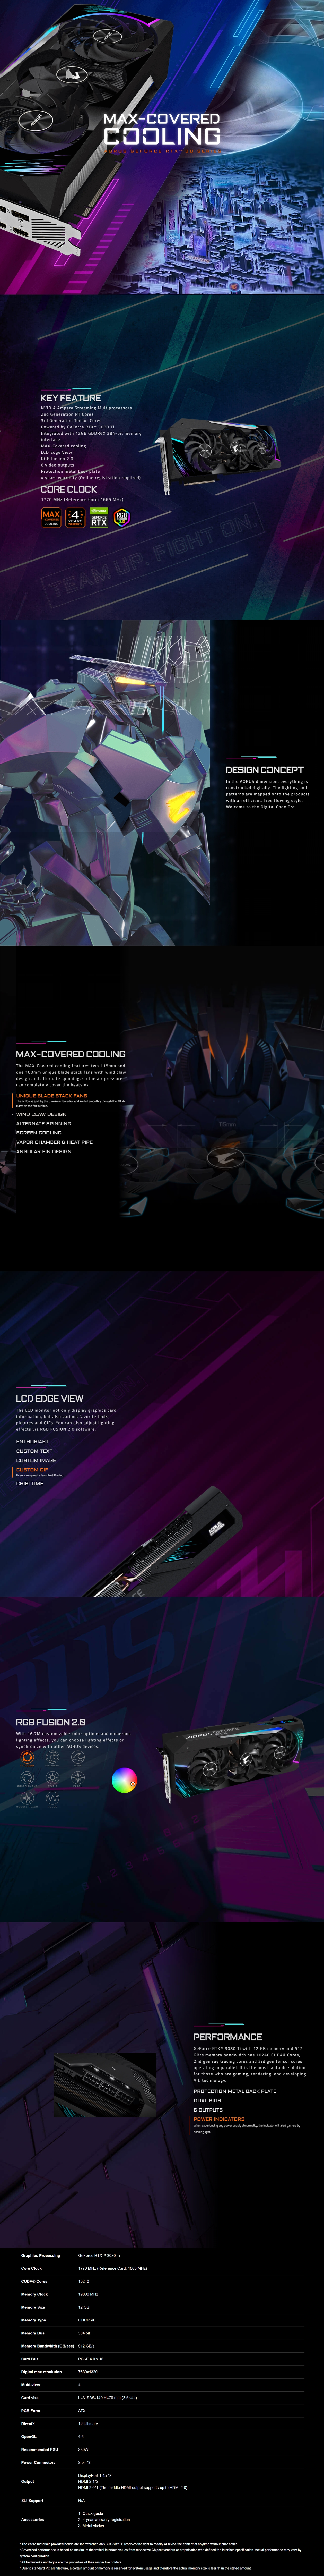 A large marketing image providing additional information about the product Gigabyte GeForce RTX 3080 Ti Aorus Master 12GB  - Additional alt info not provided